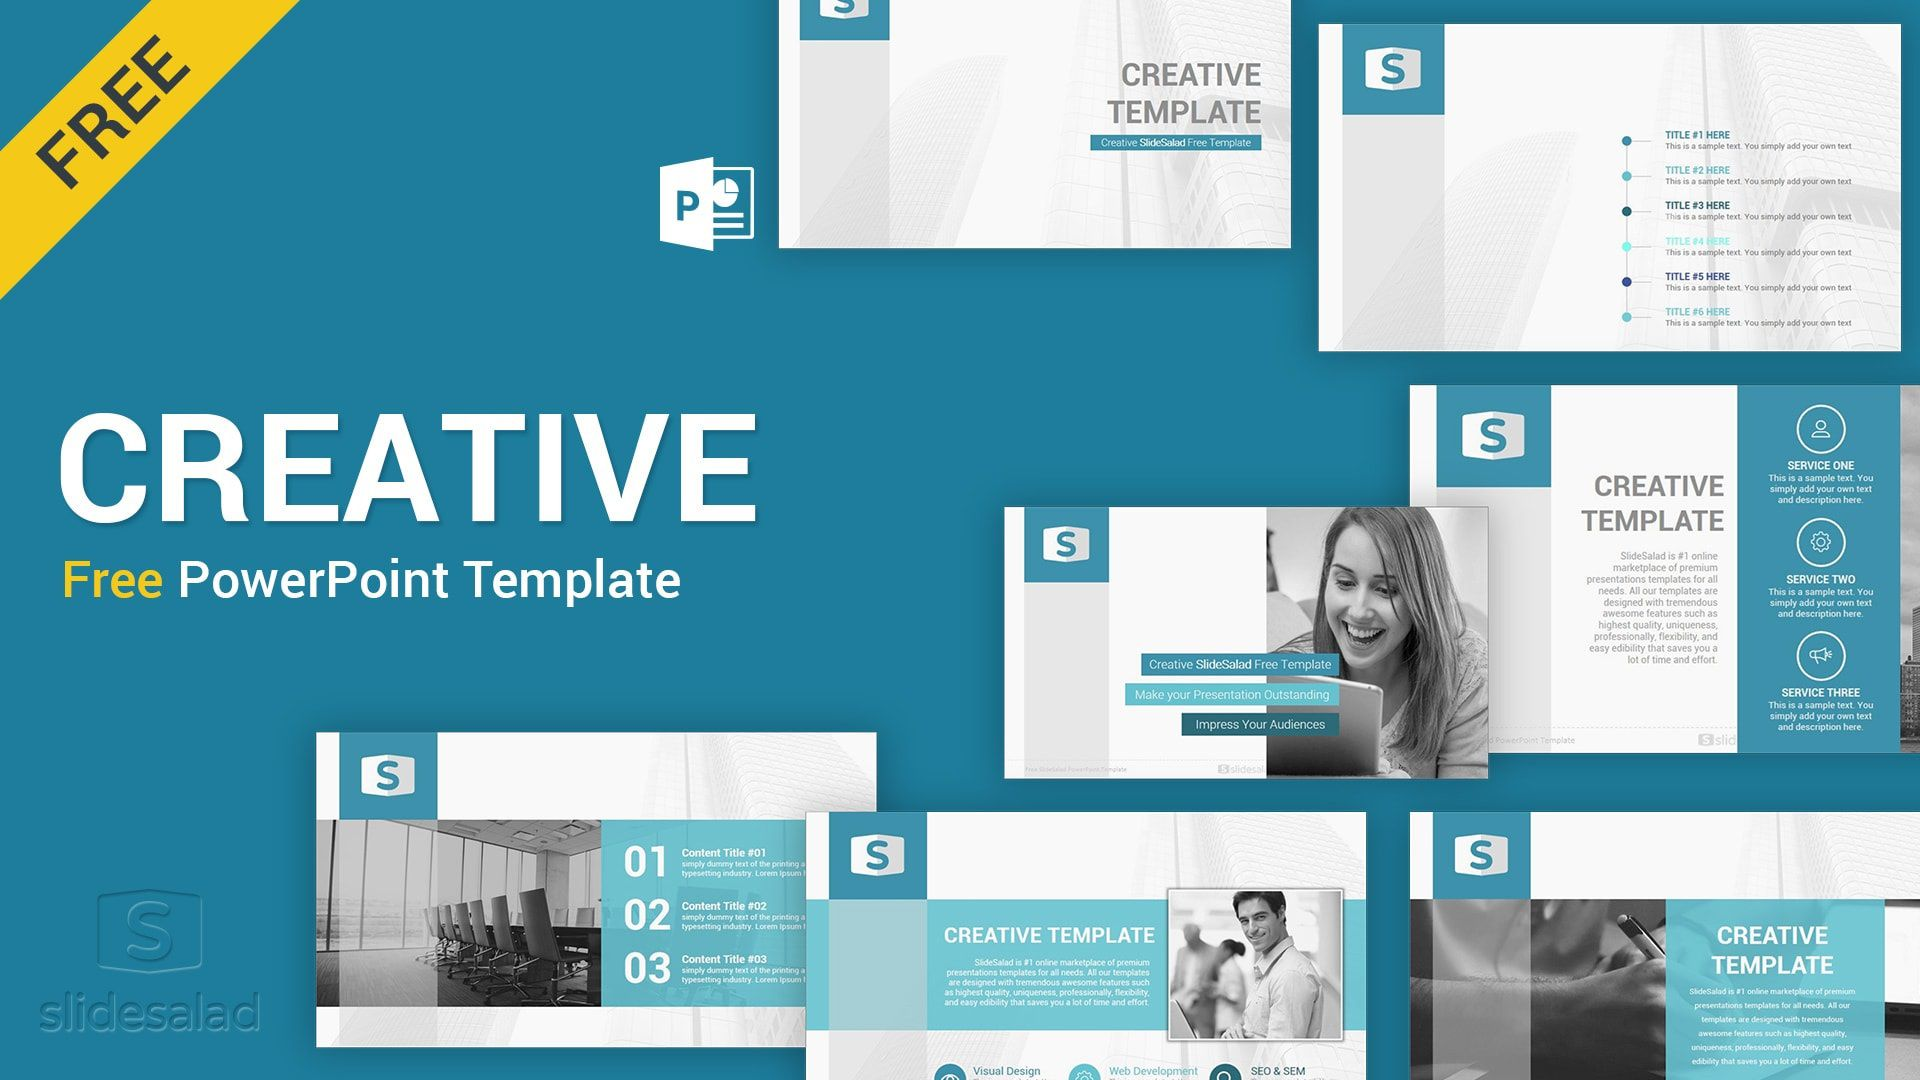 002 Awesome Download Free Powerpoint Template High Resolution  2019 Science Creative 2020Full